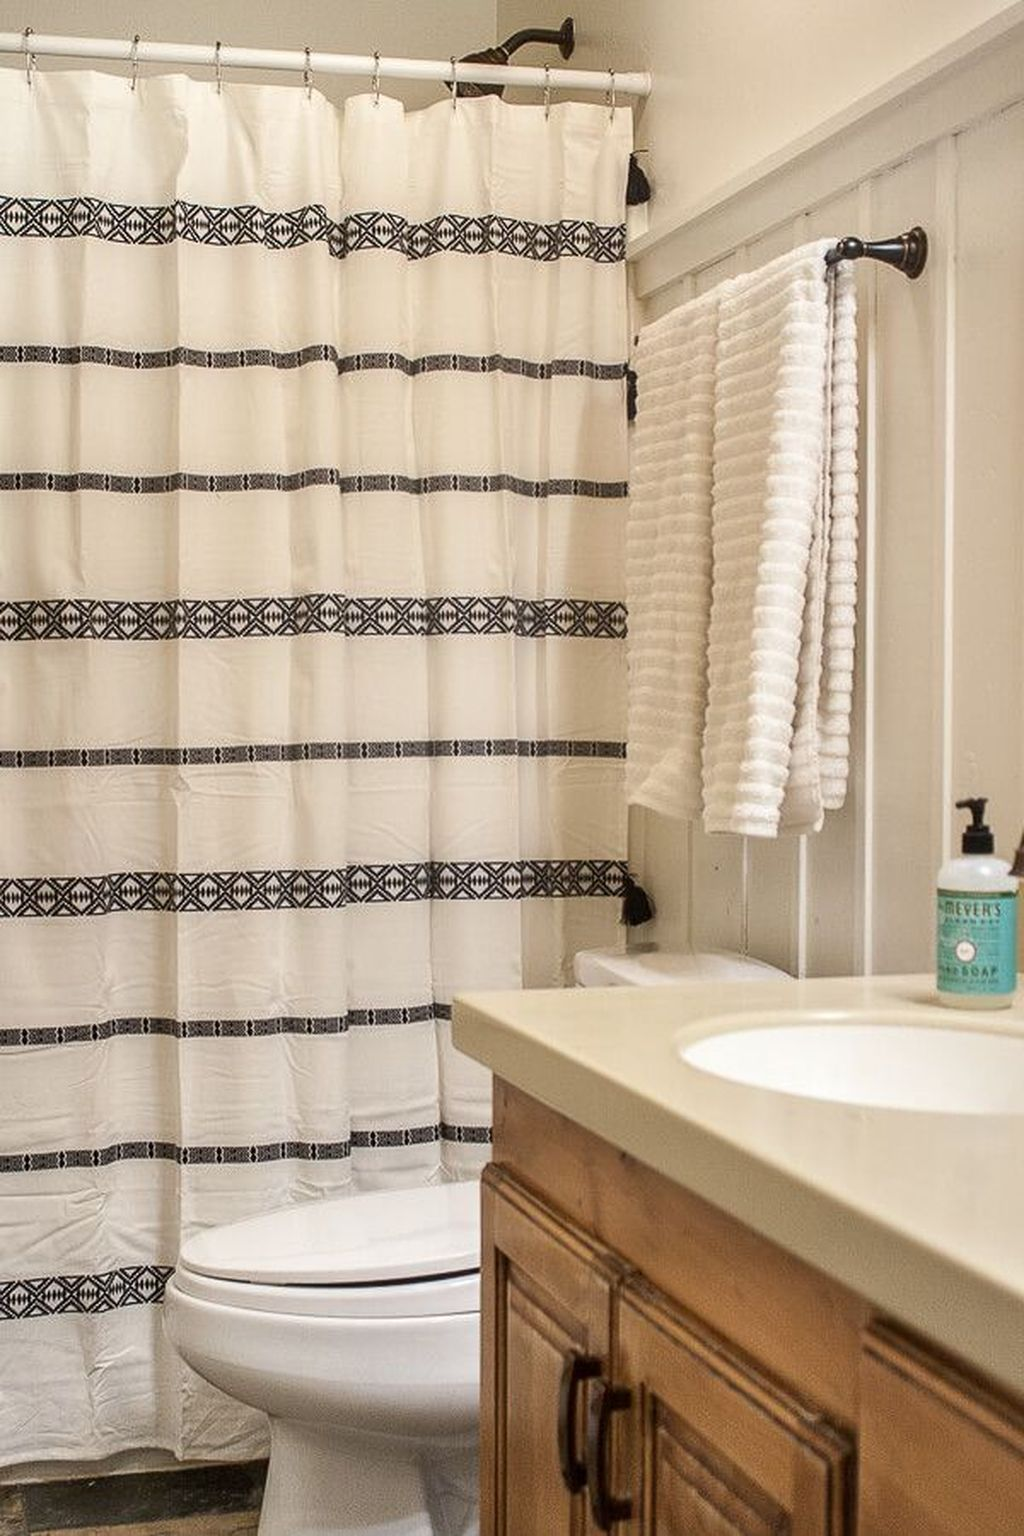 Amazing Black And White Shower Curtain For Your Bathroom Decor 17